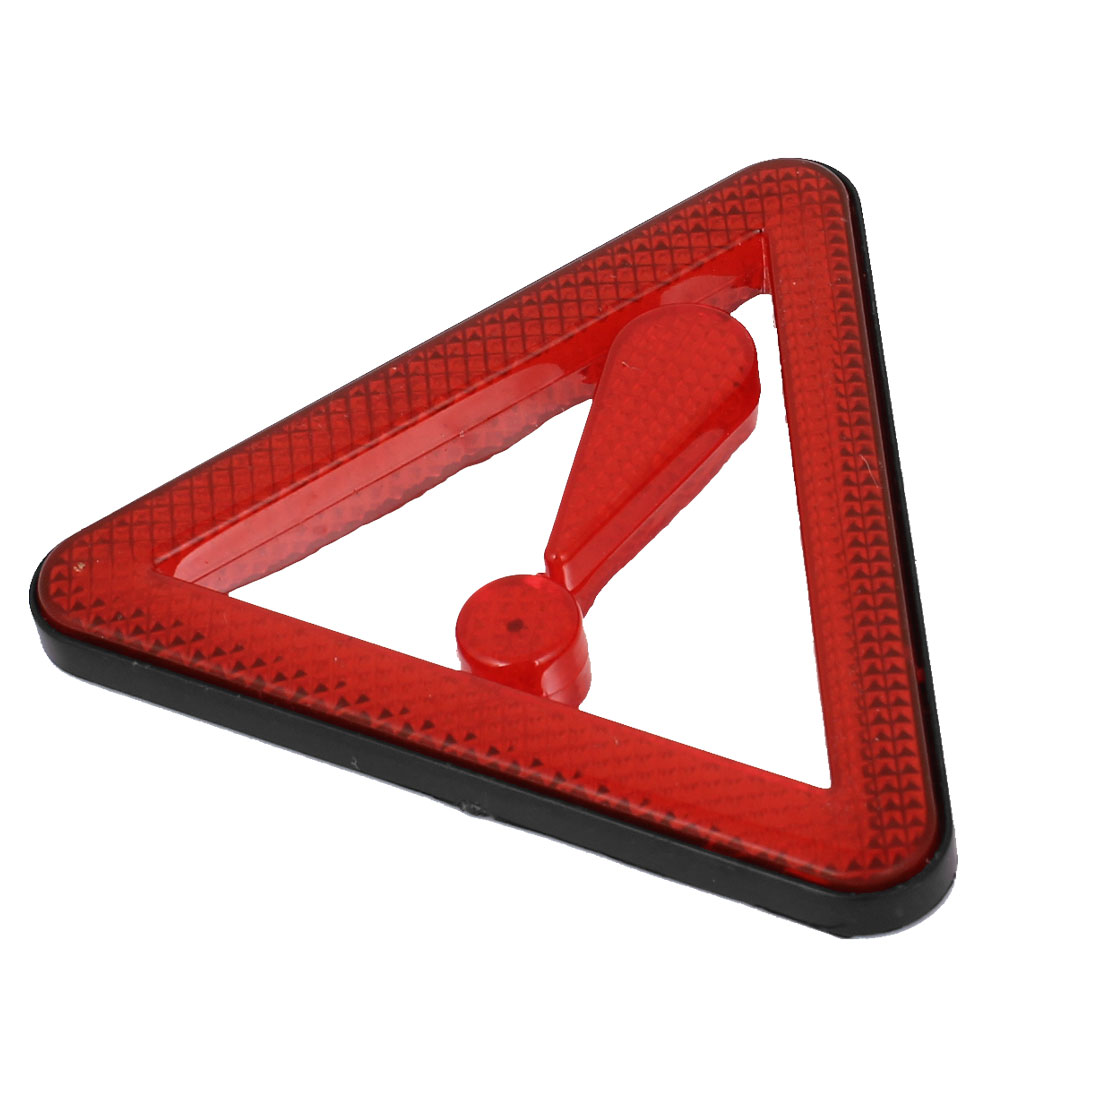 Roadside Car Breakdown Reflective Emergency Safety Warning Triangle Sign Marker